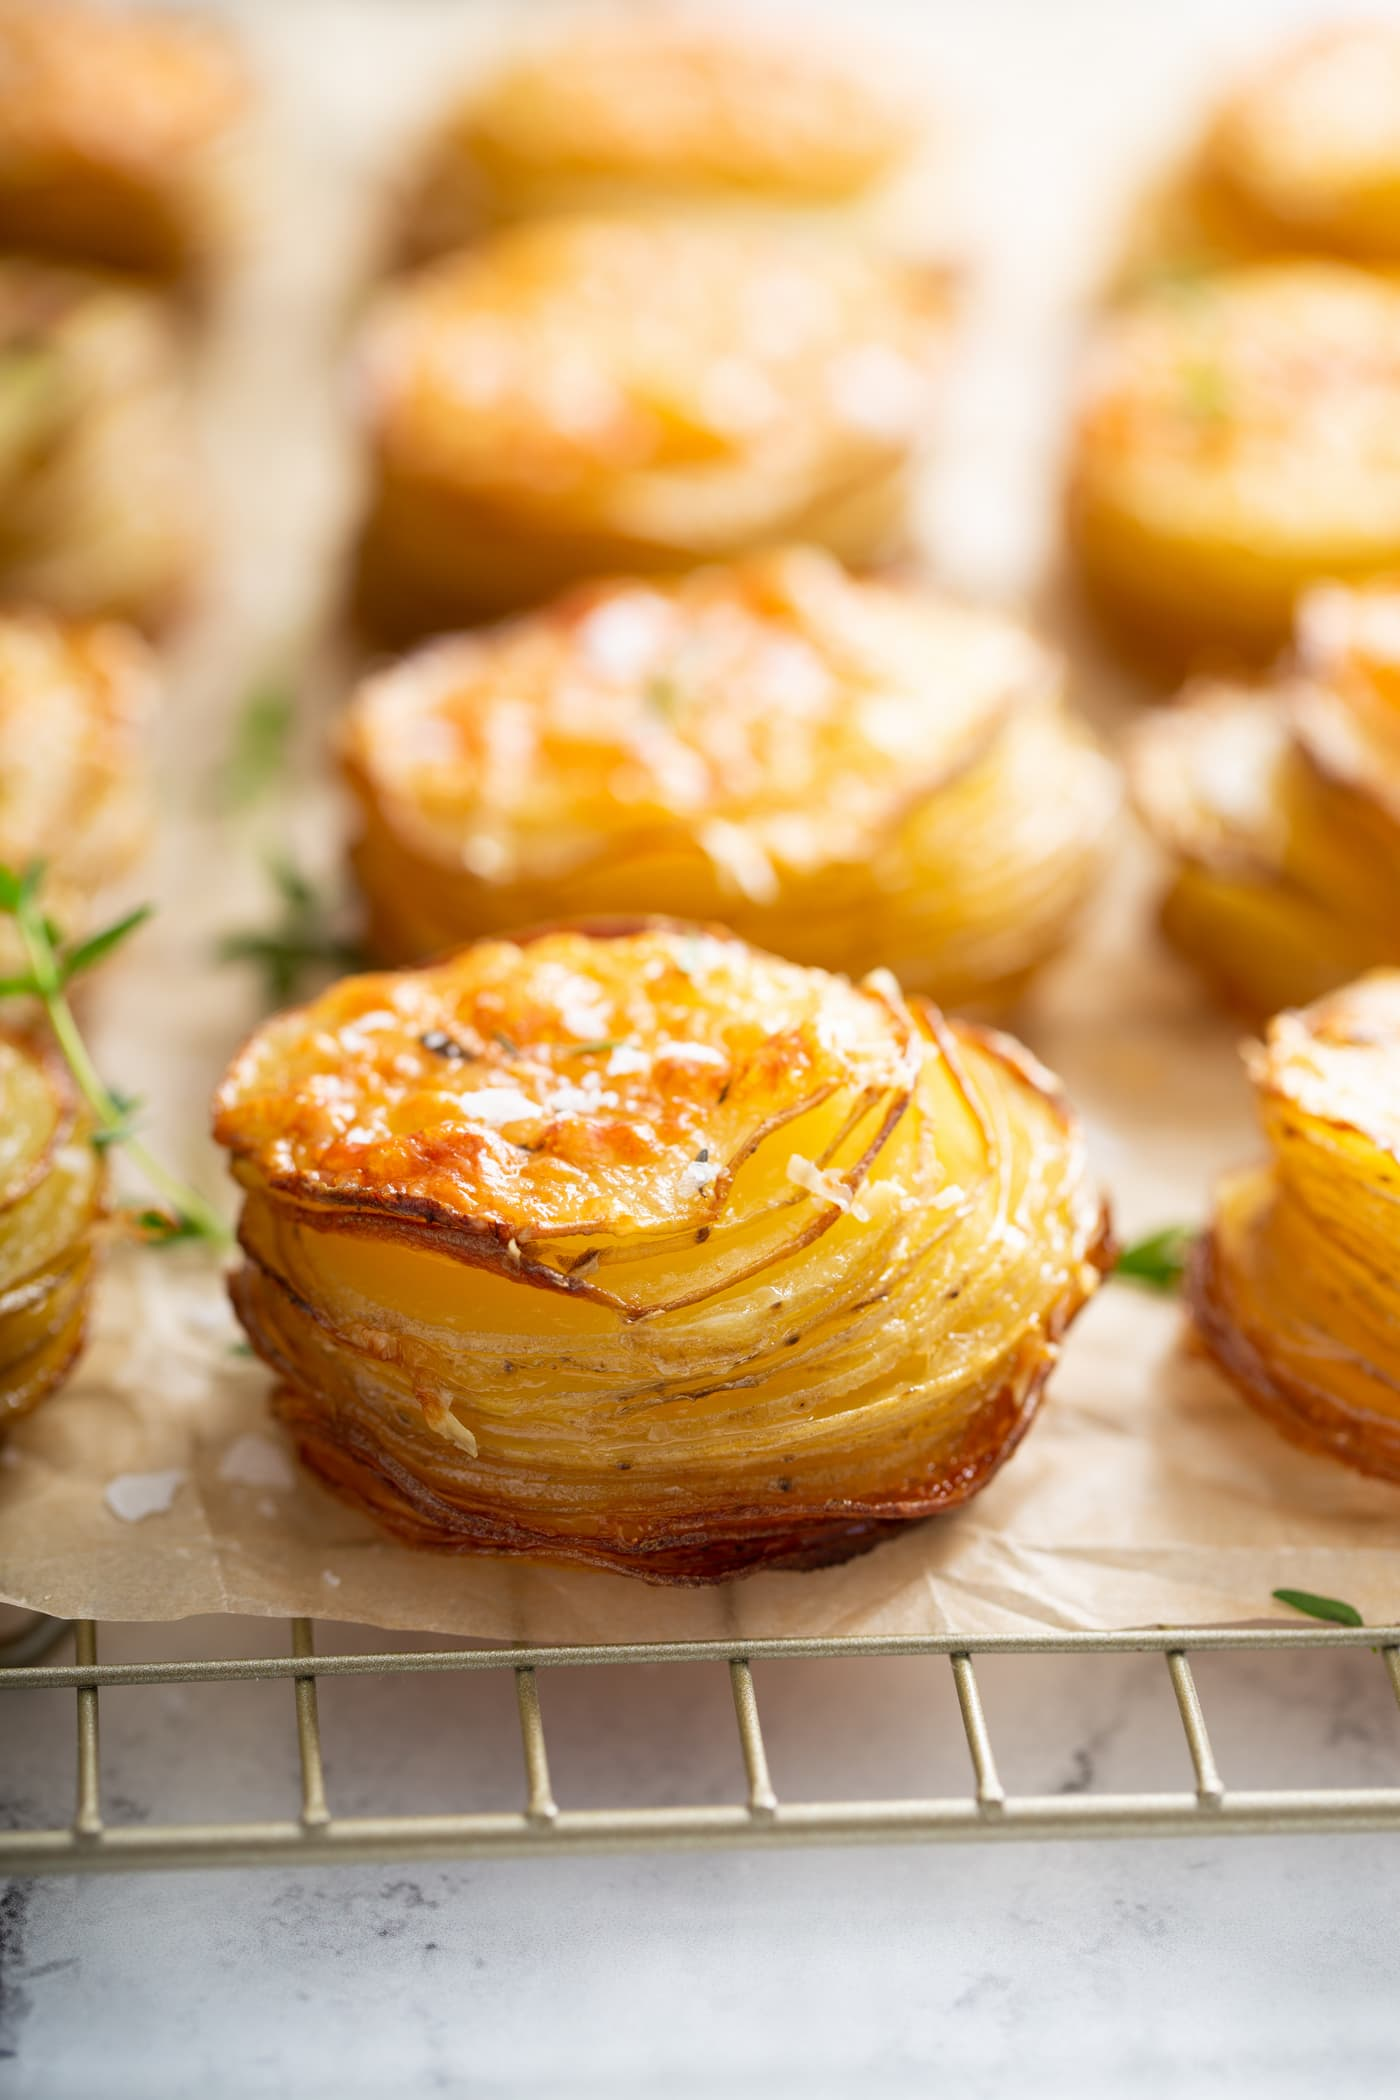 Gruyere potatoes baked to a golden brown sitting on a wooden cutting board.